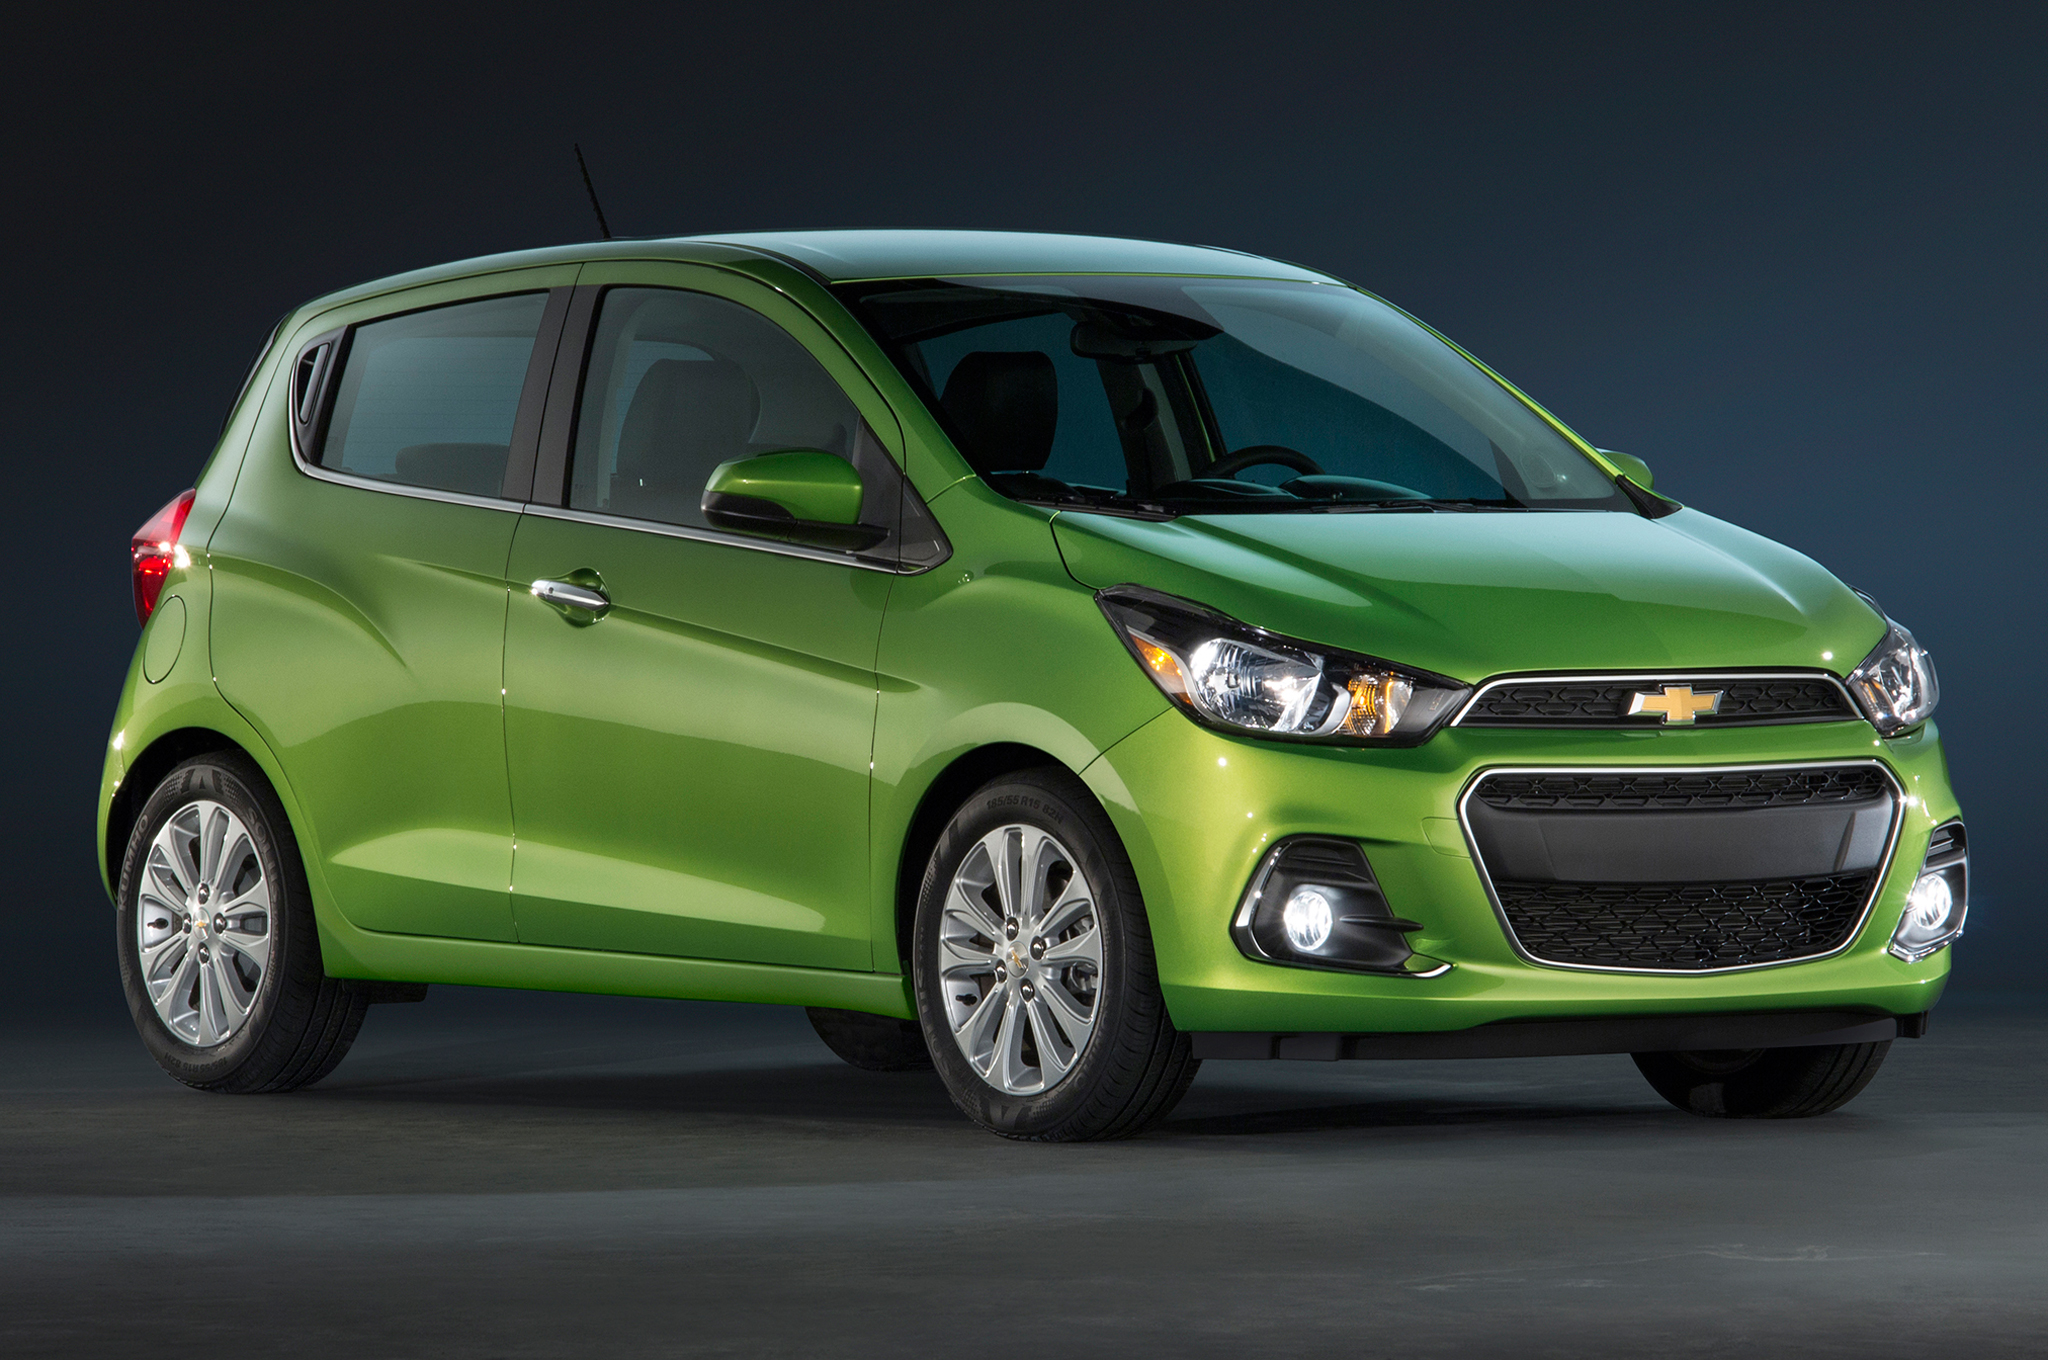 hight resolution of 2016 chevrolet spark first look motortrend automotive fuse box wiring 2016 chevrolet spark first look